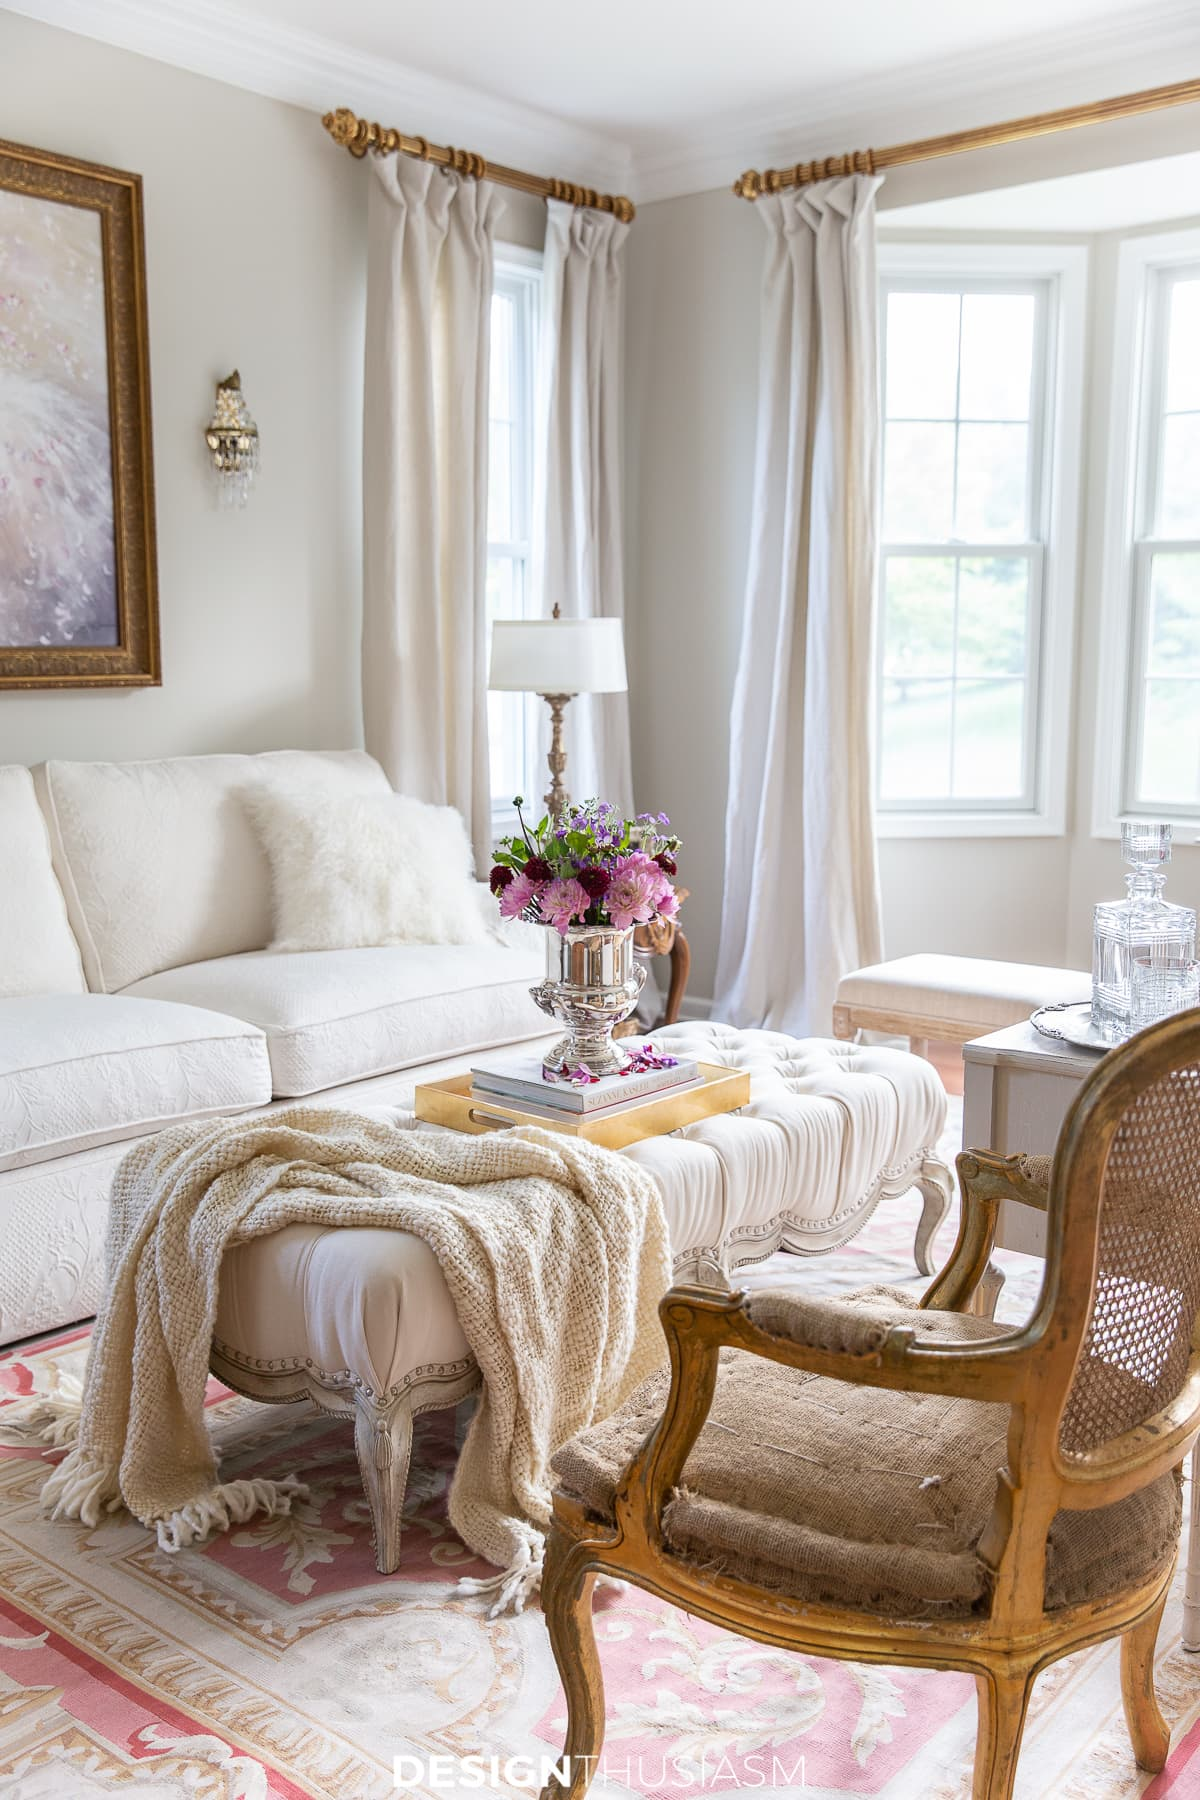 Plan Your Room: Understanding Room Layout and Furniture Placement